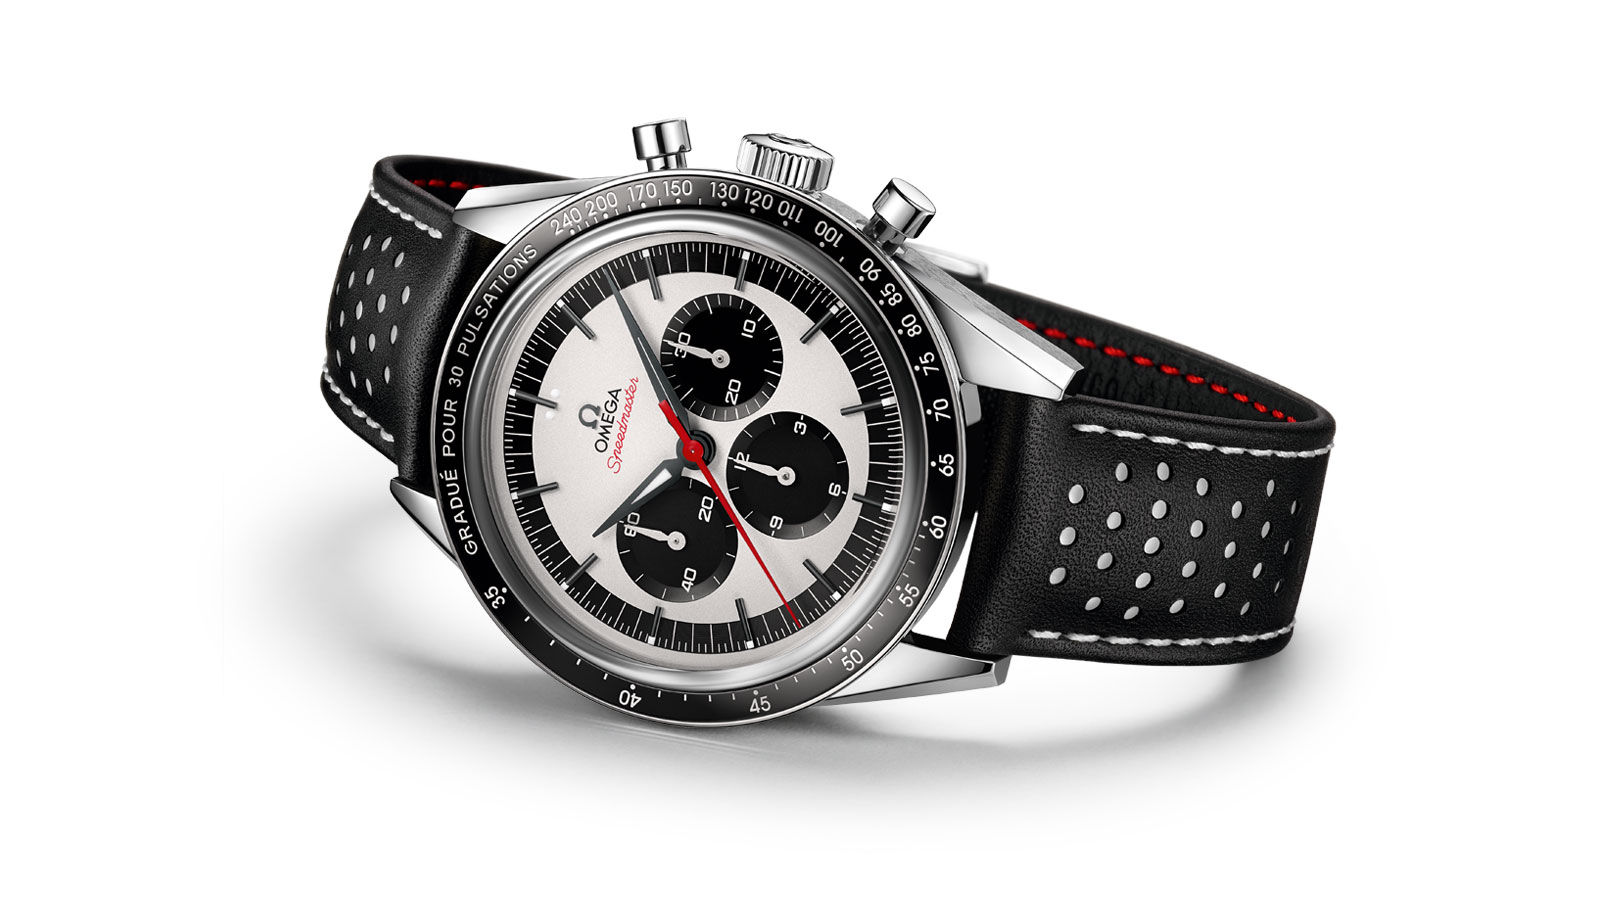 Speedmaster Moonwatch Moonwatch Chronograph 39,7 mm - 311.32.40.30.02.001 - Visualizzare 3